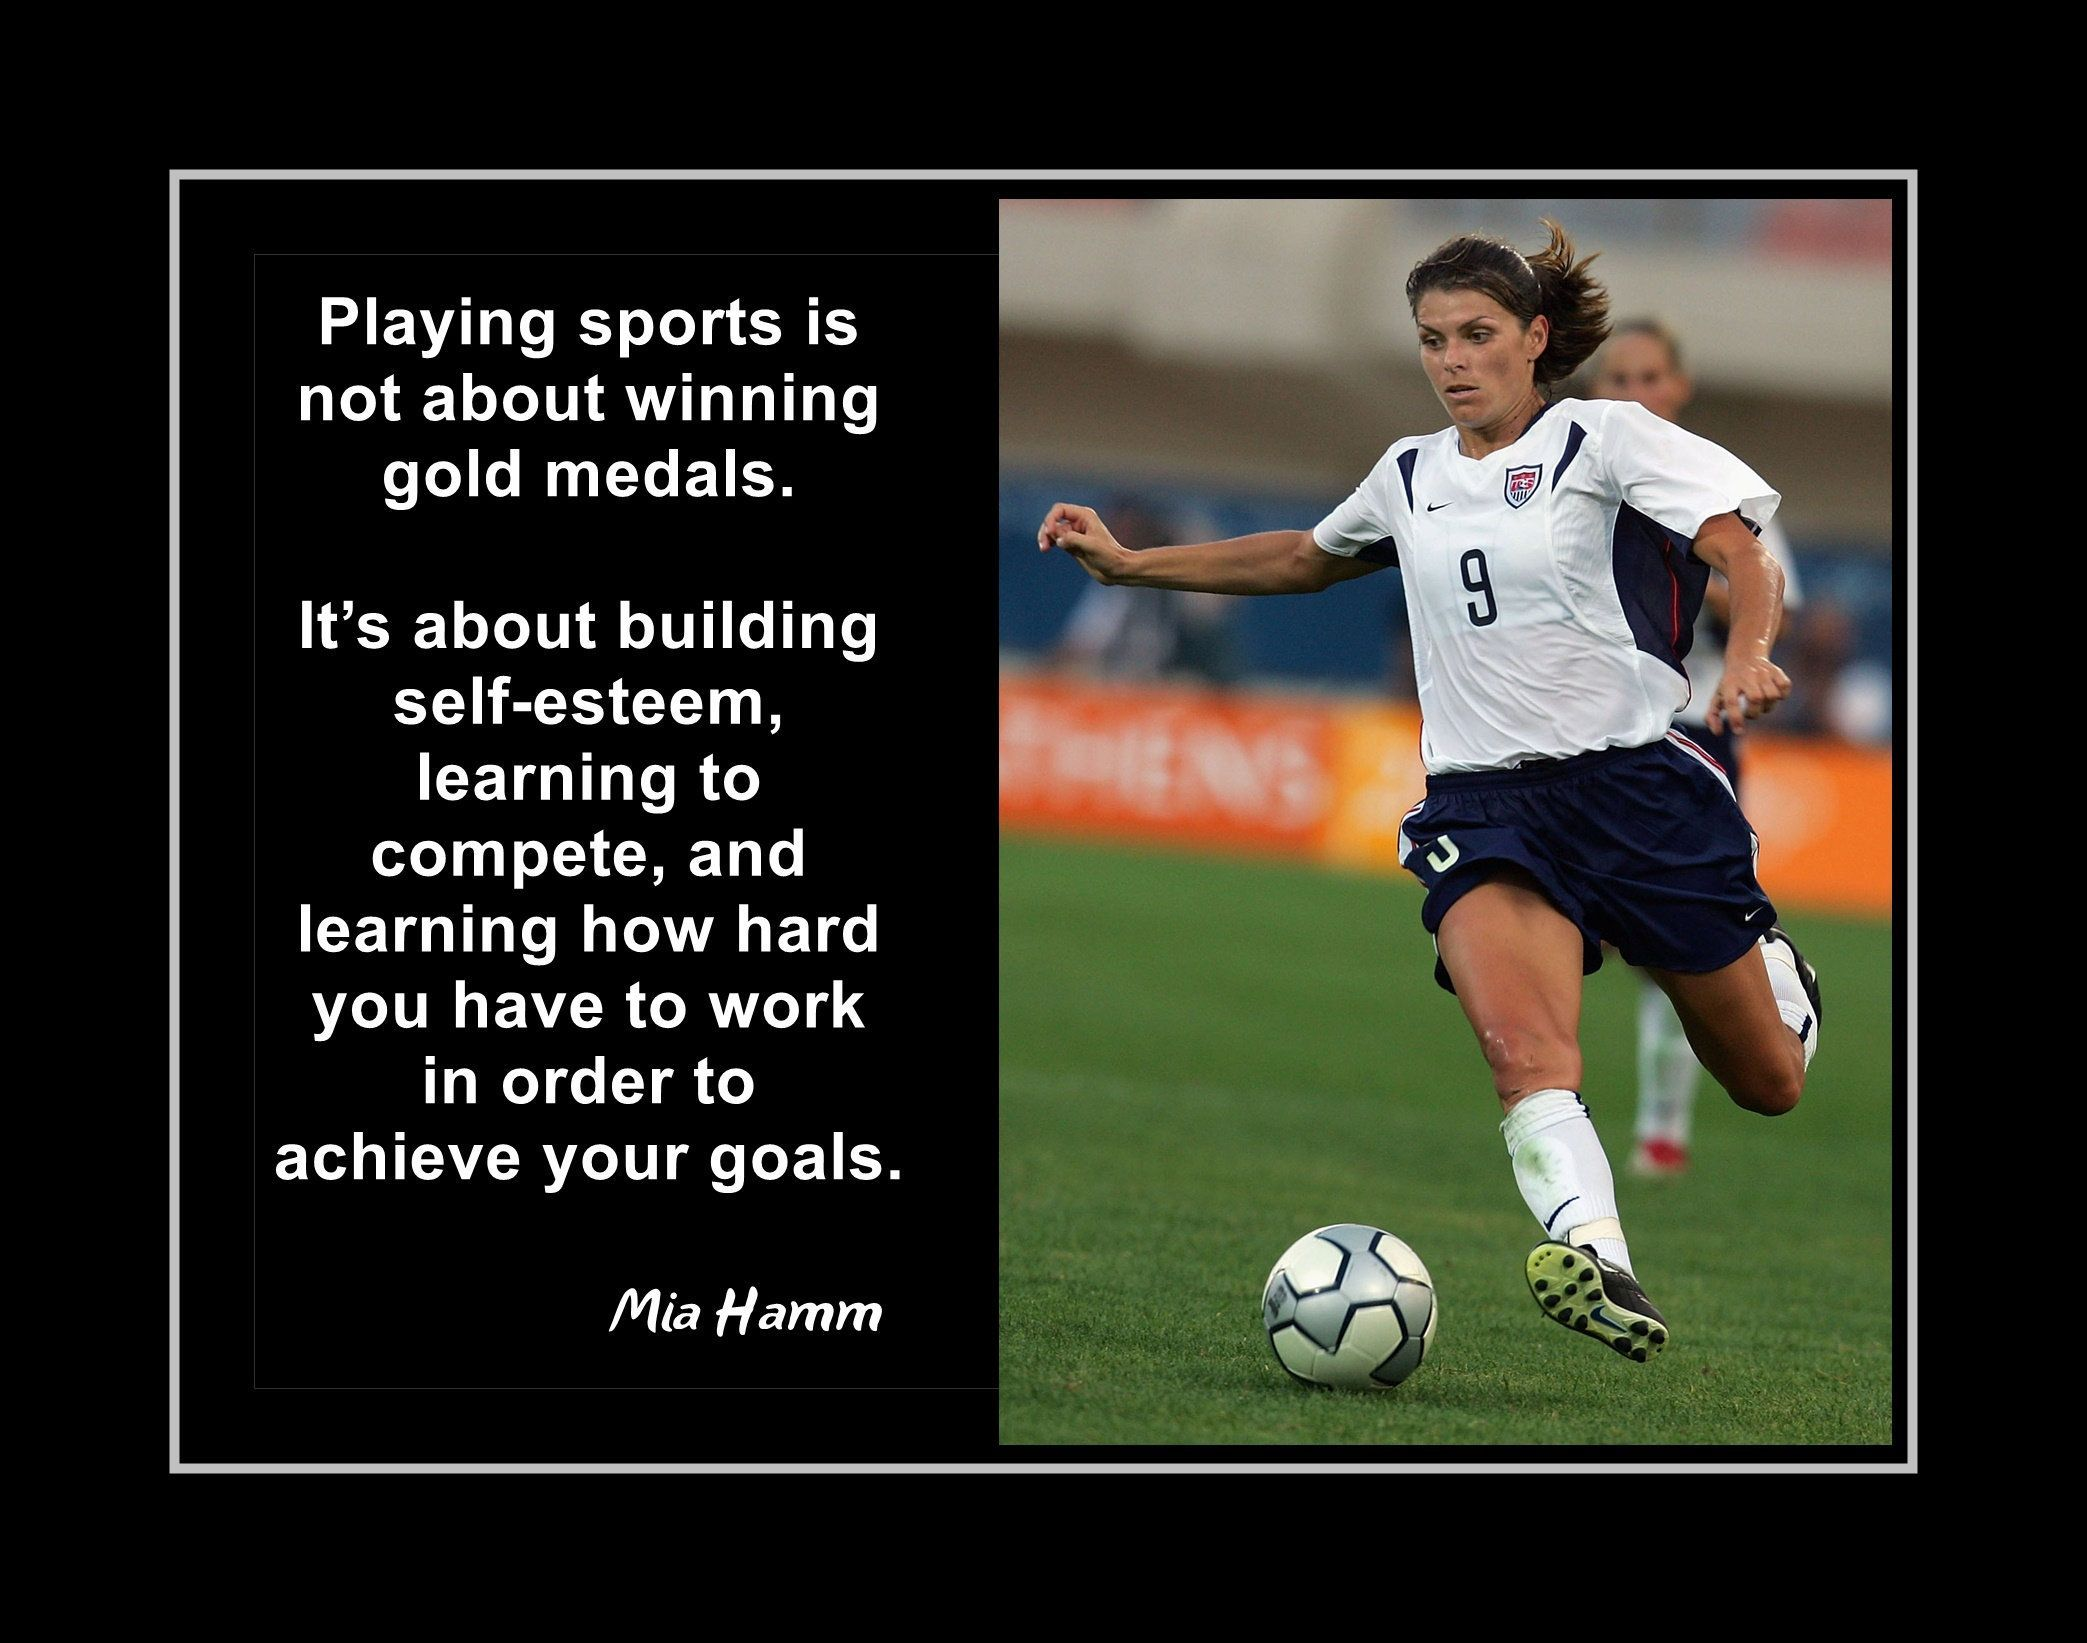 Mia Hamm Kids Motivational Quote Wall Decor Girl Soccer Photo Inspirational Poster W In 2020 Inspirational Soccer Quotes Soccer Quotes Inspirational Quotes Wall Art